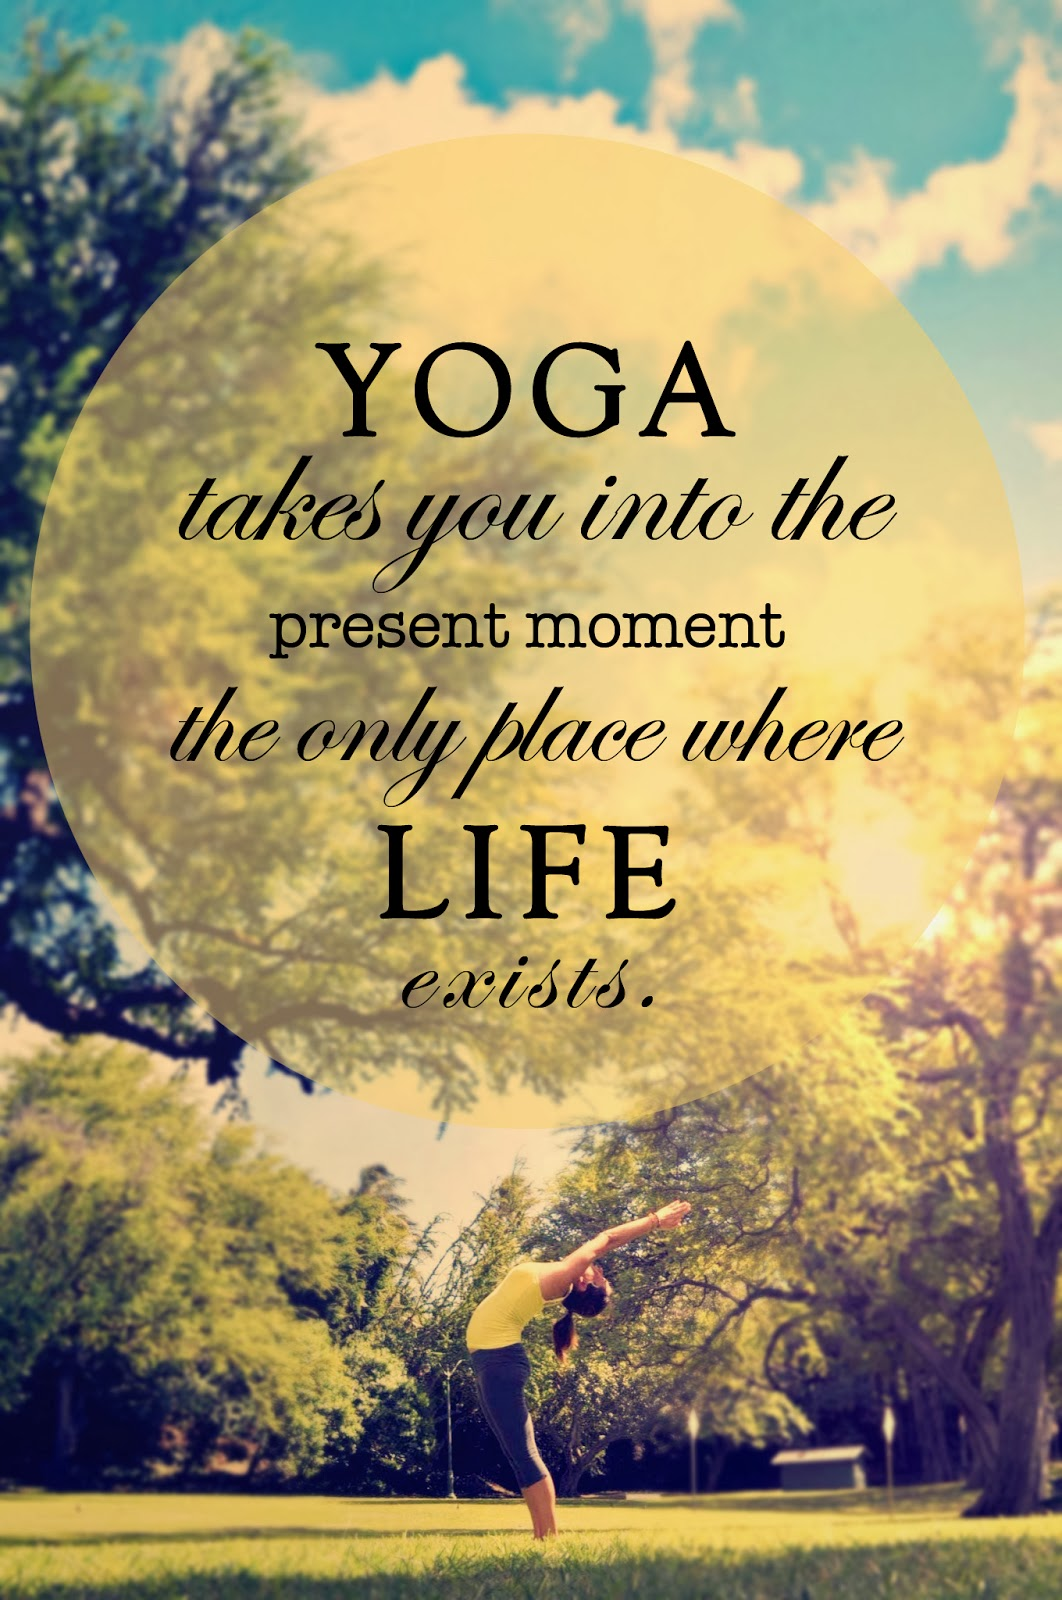 yoga quotes - photo #3